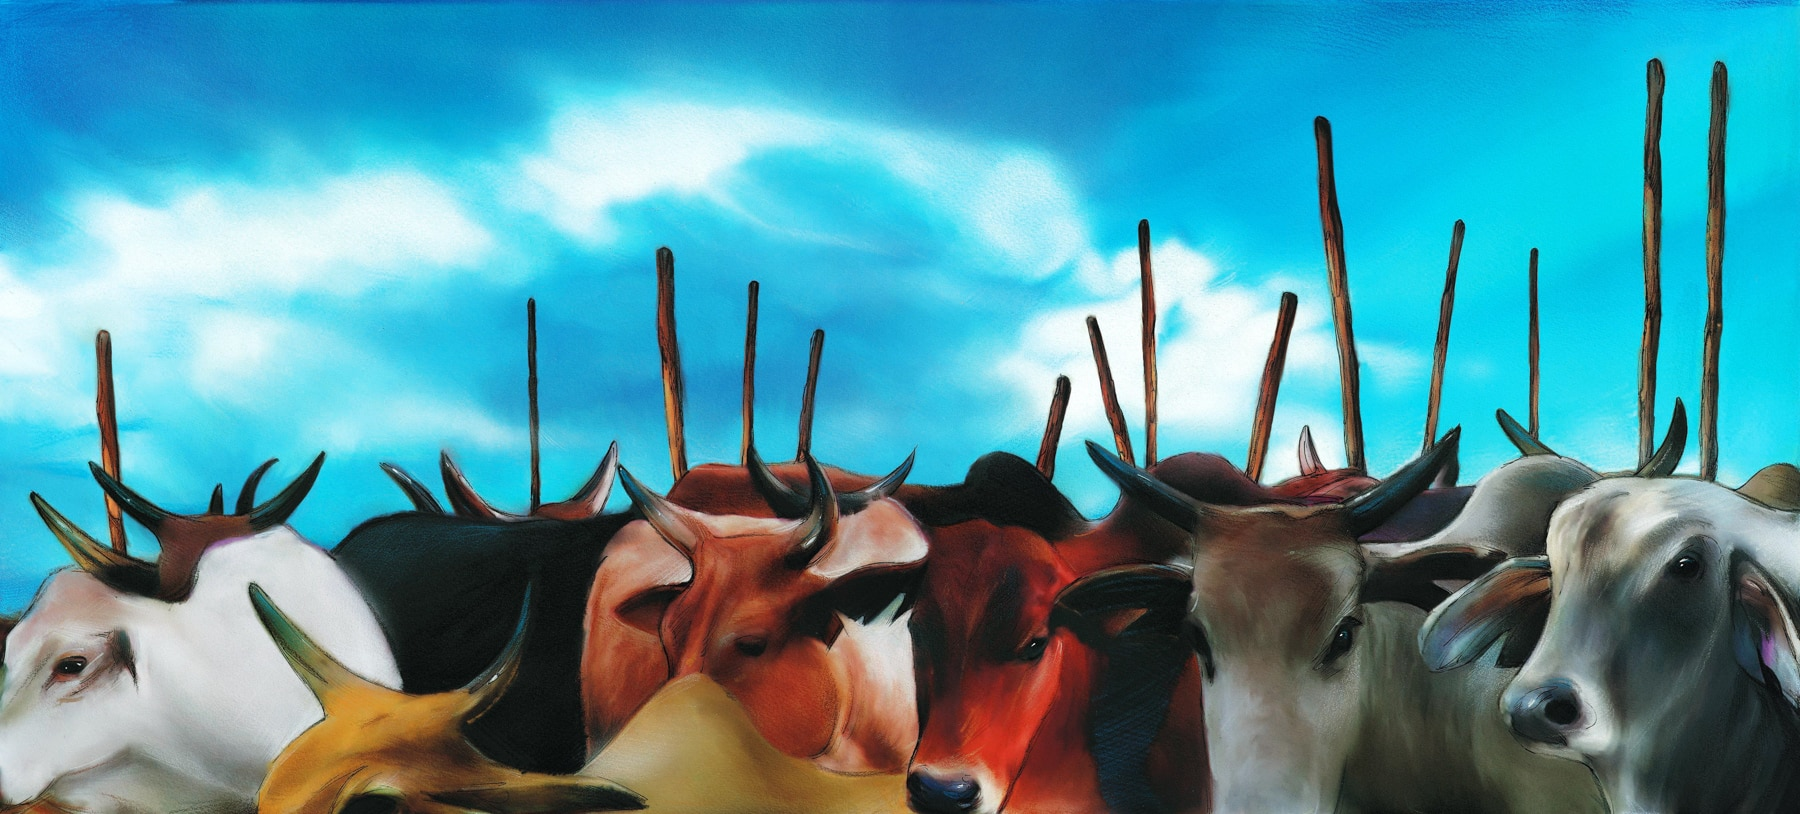 Colorful illustration of African cows (Thomas Gonzalez)